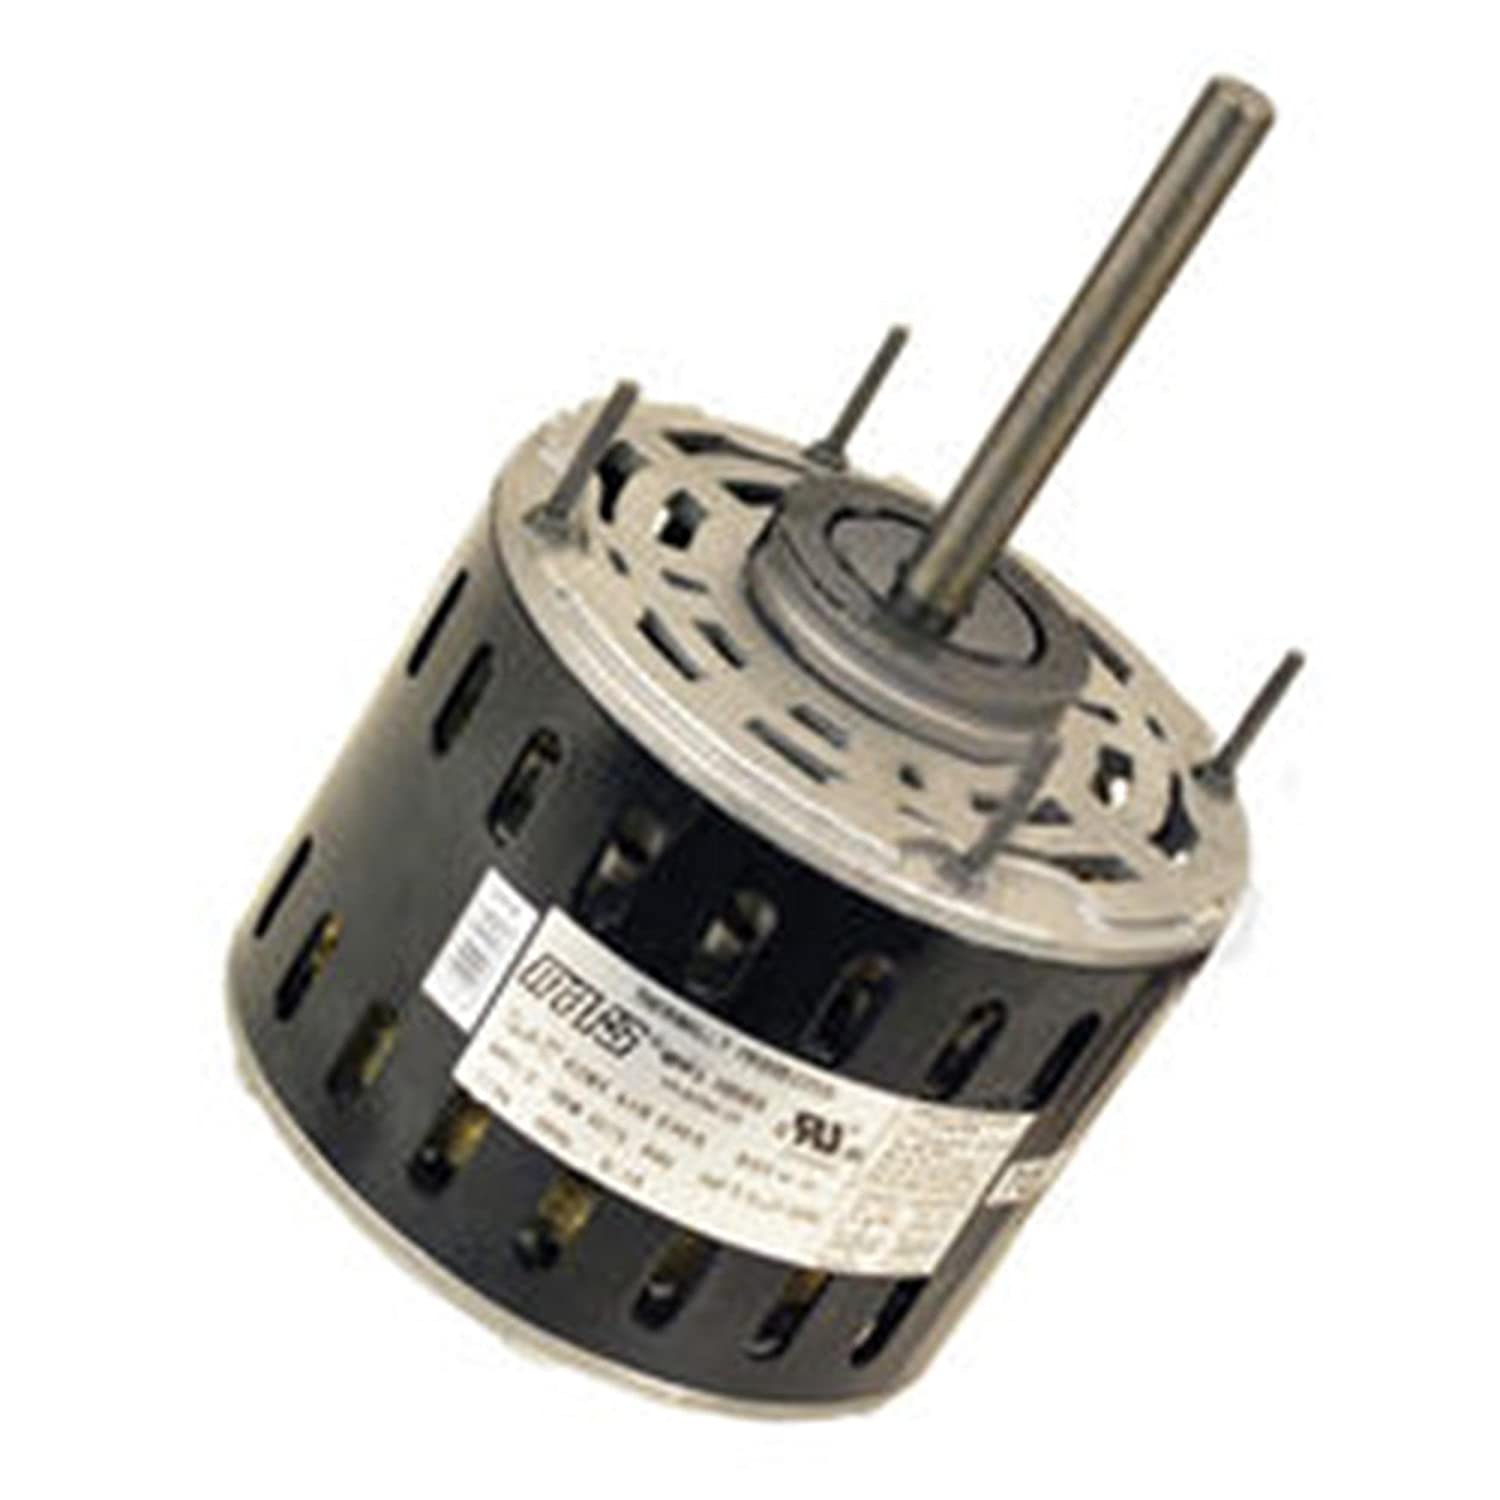 Mars Motors 10588 1/2hp 208-230v, 1075rpm Furnace Blower Motor: Industrial  Hvac Blowers: Amazon.com: Industrial & Scientific